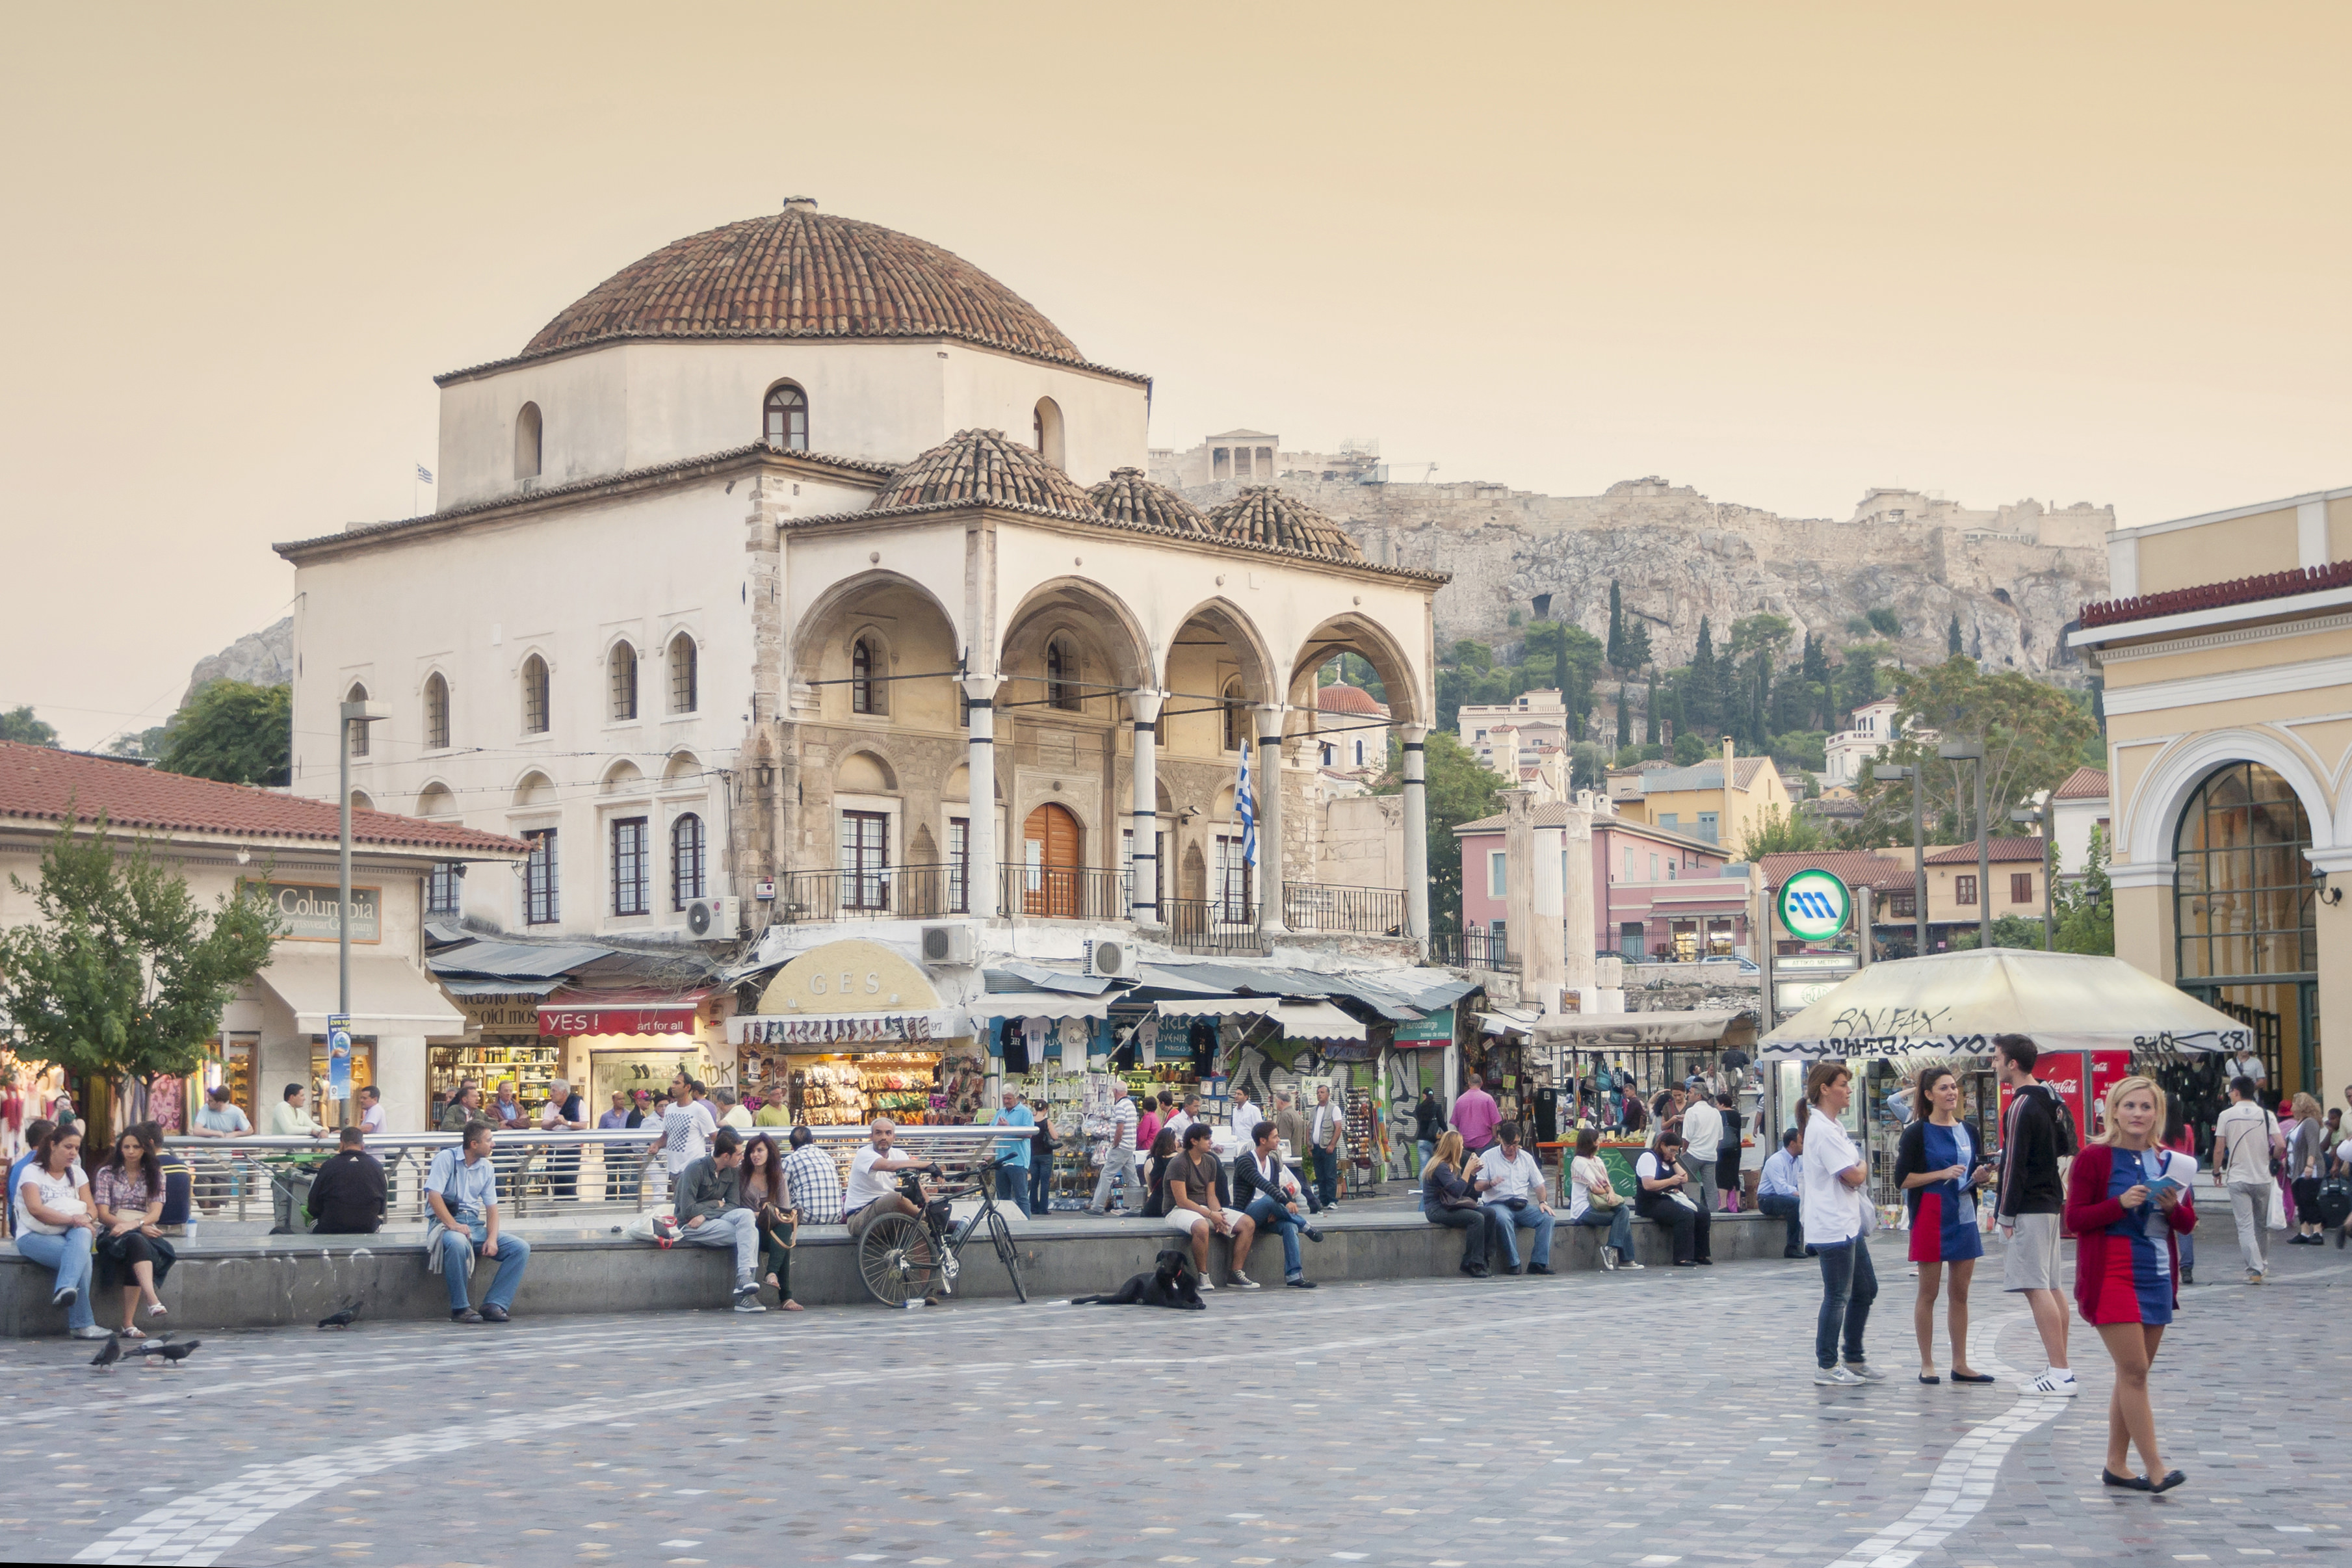 Athens, Greece - October 5, 2011 : People sitting and resting in front of the Tzistarakis Mosque in Monastiraki Square in central Athens, Greece.